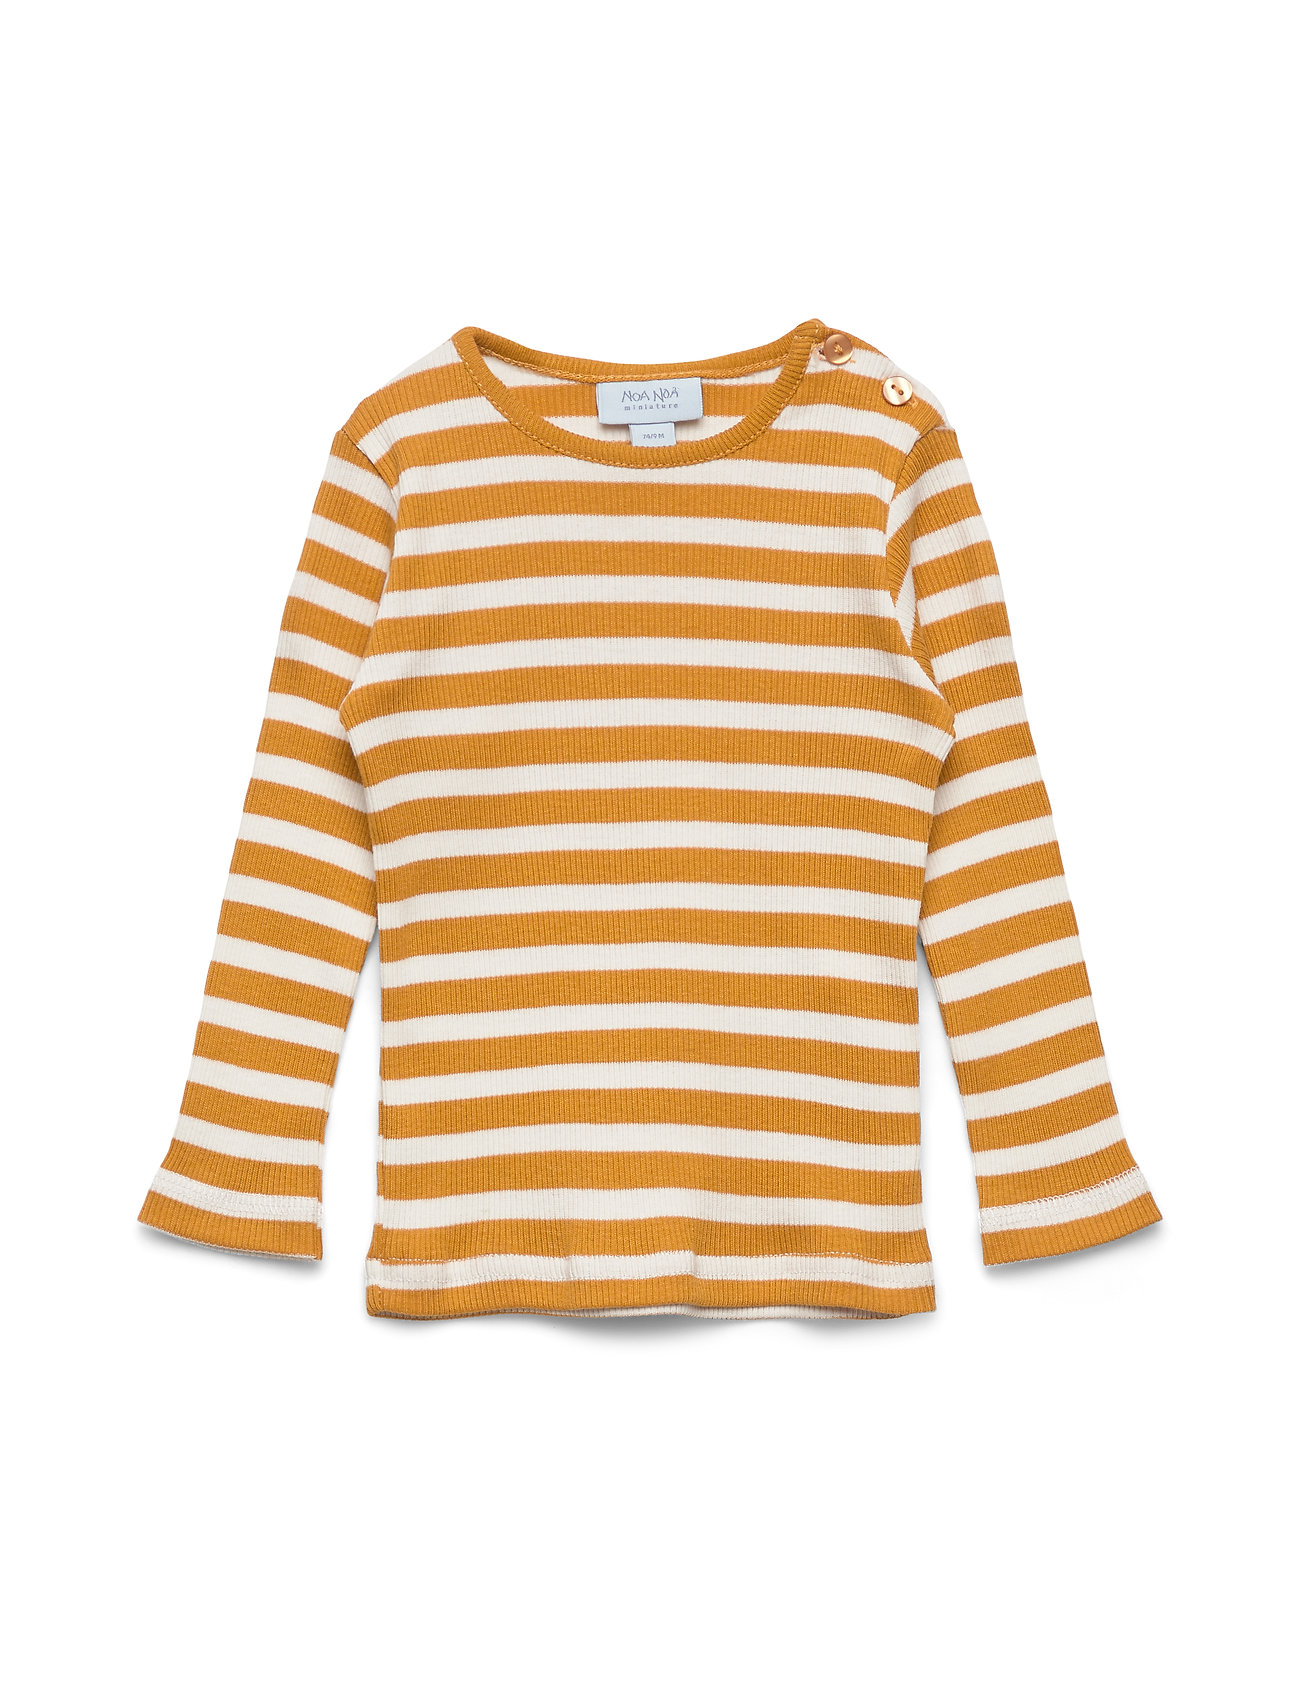 Noa Noa Miniature T-shirt - CHAI TEA